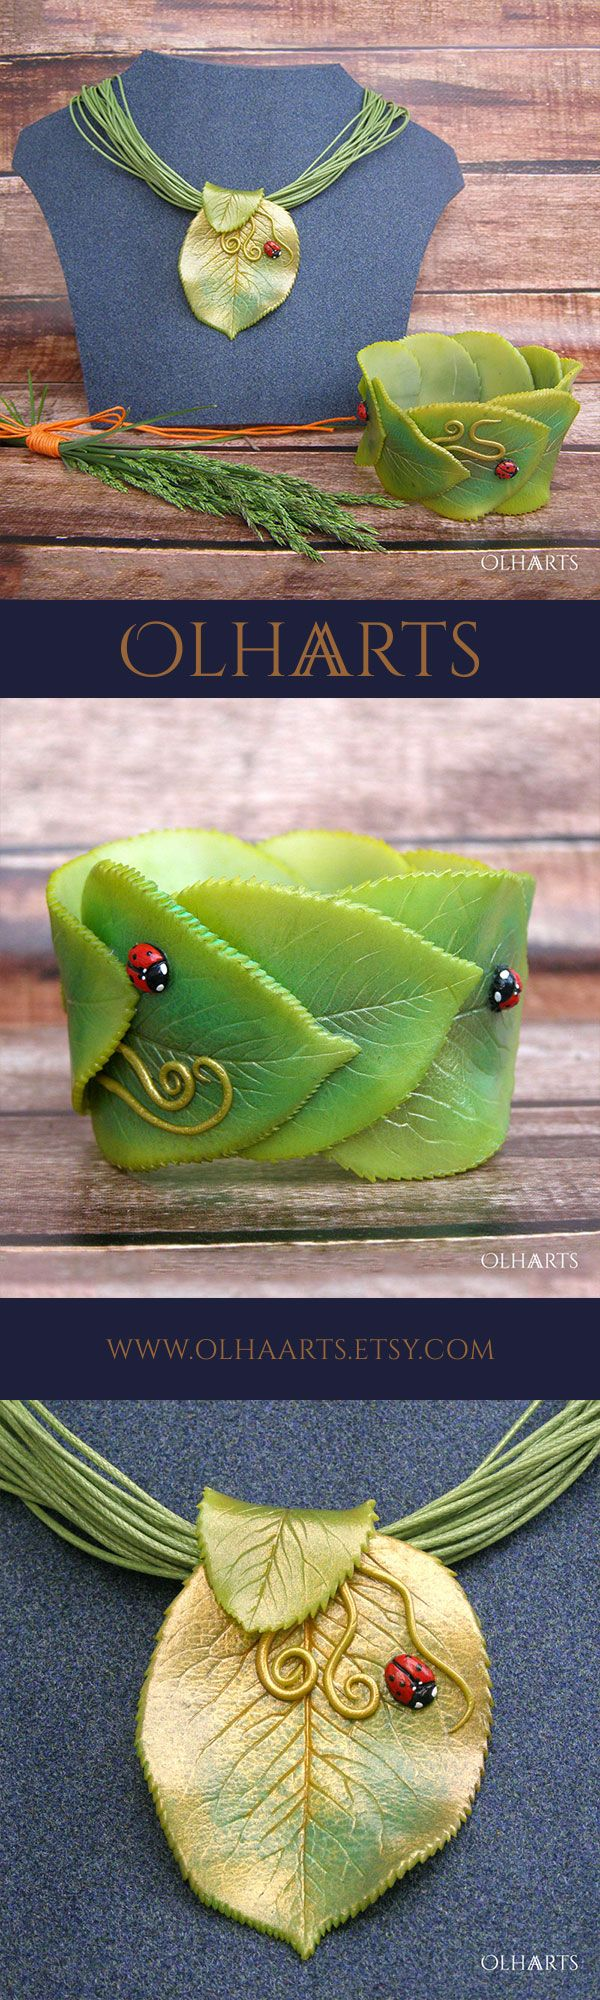 Gorgeous leaf green polymer clay bracelet! Love the way the realistic looking leaves are layered around the wrist and the tiny ladybugs bring a whimsical punch of color!